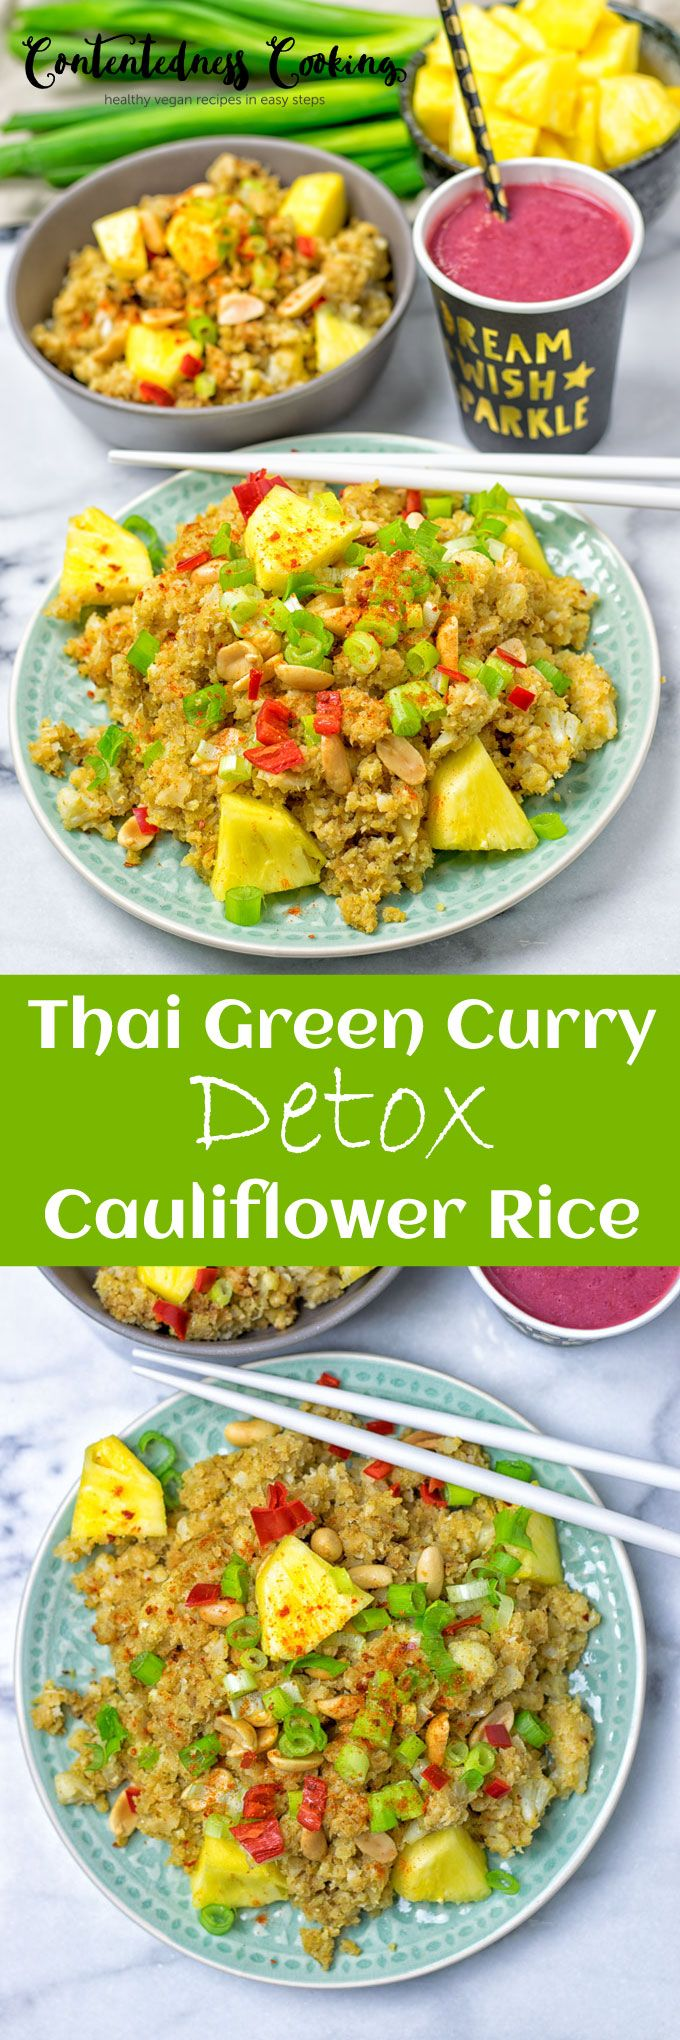 Thai Green Curry Detox Cauliflower Rice made with just 6 ingredients and 2 easy steps @contentednessco